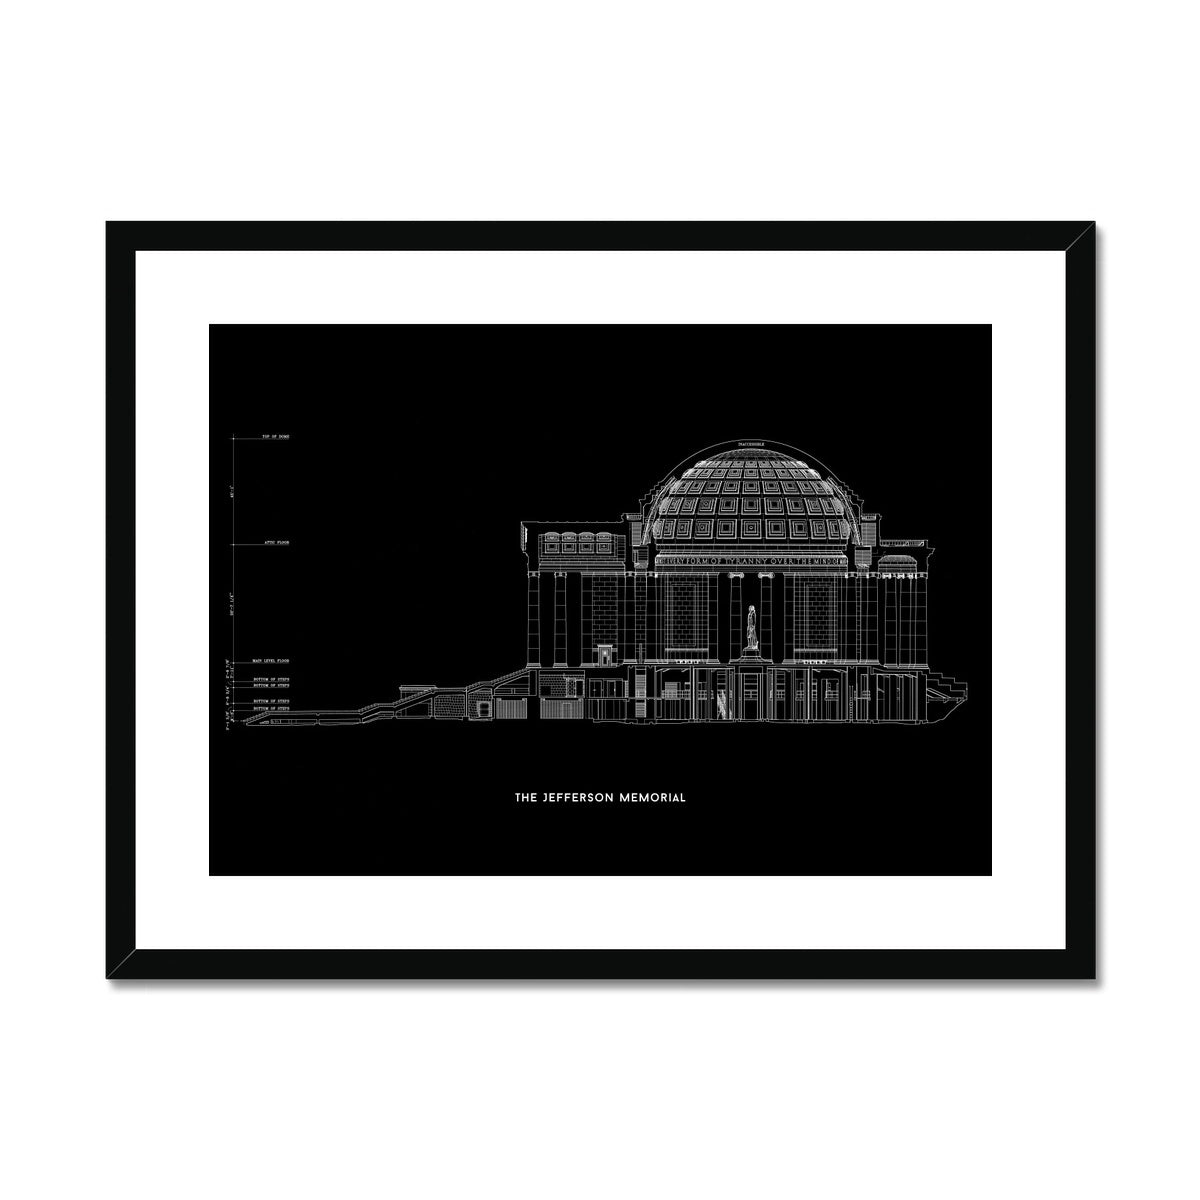 The Jefferson Memorial West Elevation Cross Section - Black -  Framed & Mounted Print